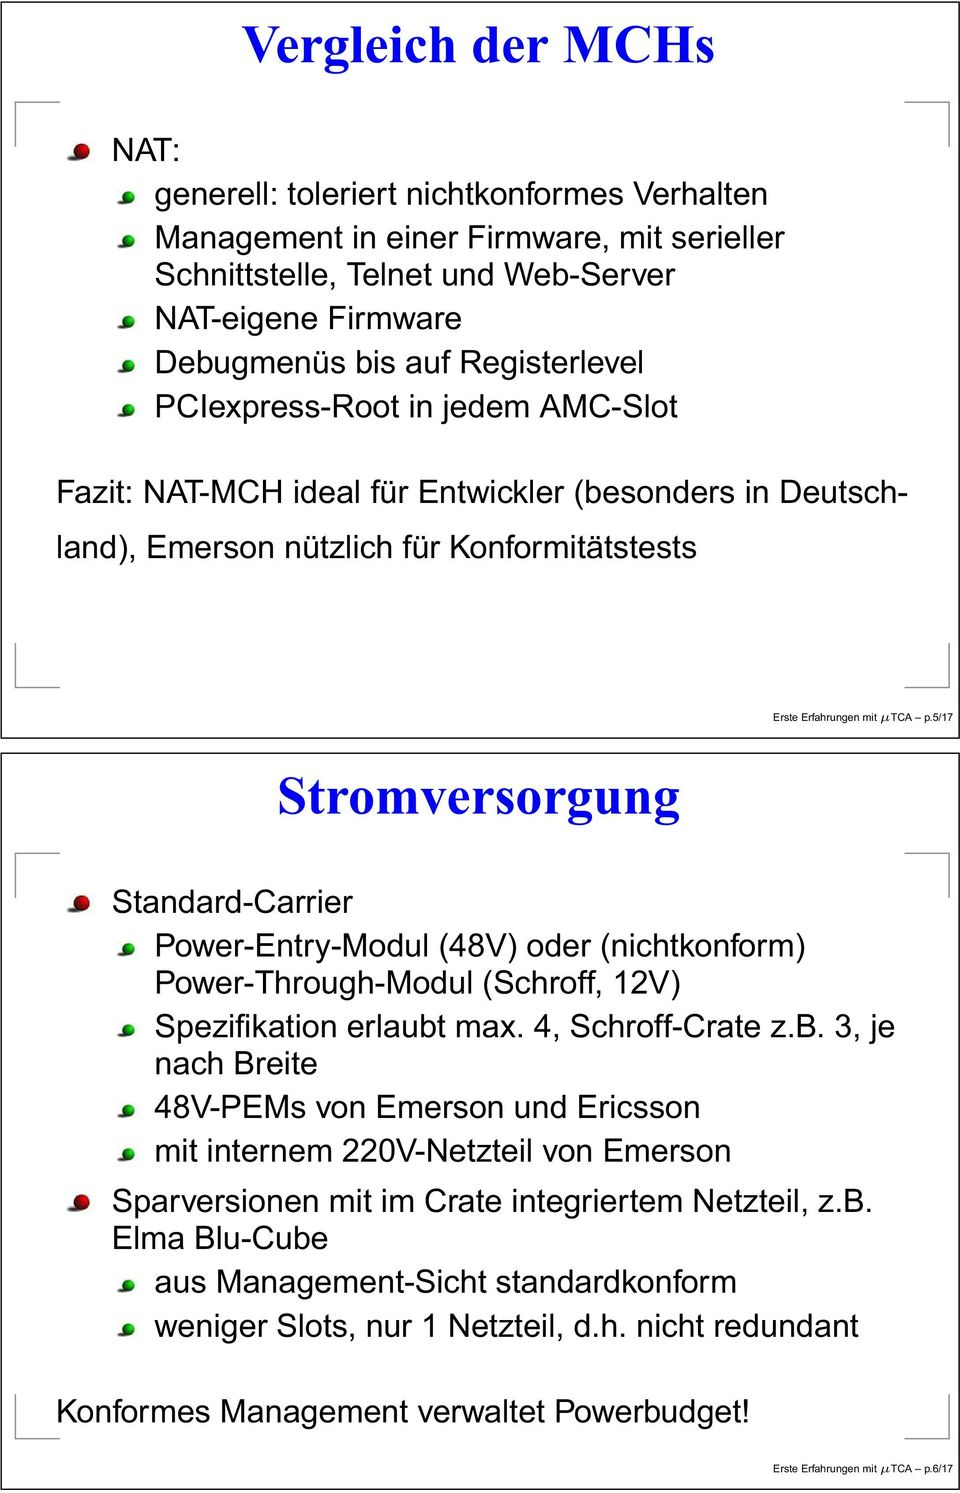 5/17 Stromversorgung Standard-Carrier Power-Entry-Modul (48V) oder (nichtkonform) Power-Through-Modul (Schroff, 12V) Spezifikation erlaubt